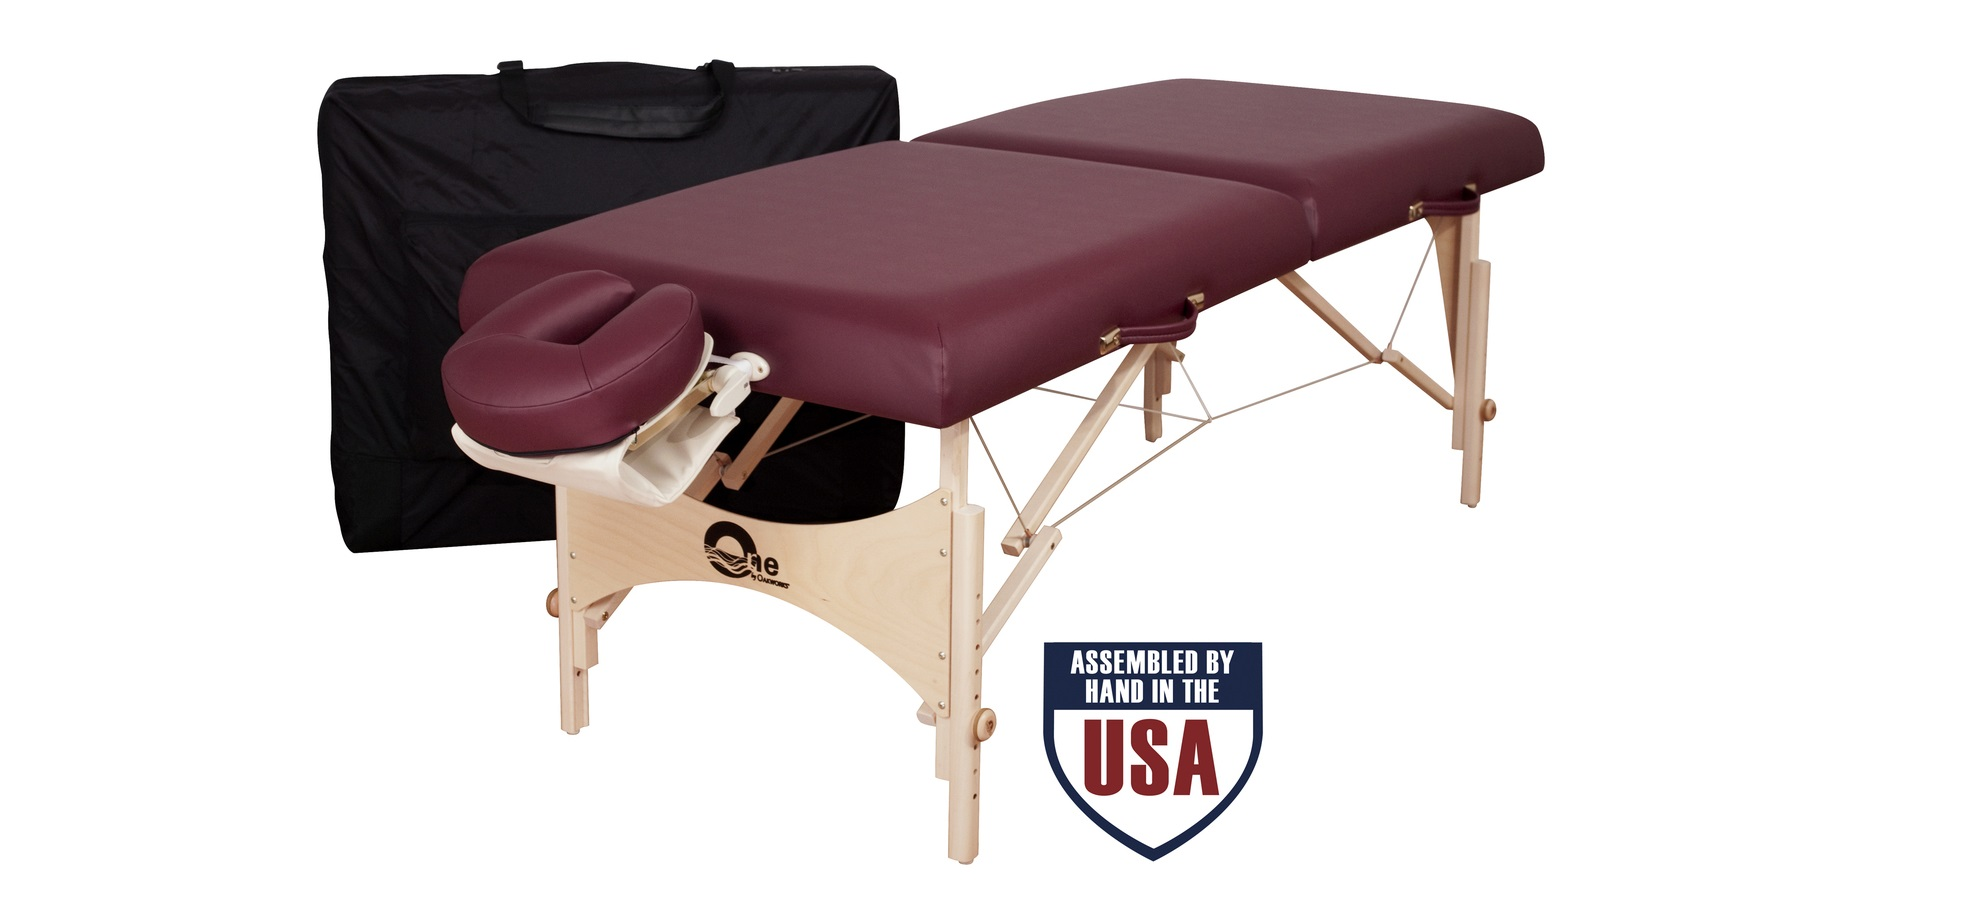 Best lightweight and portable massage table reviews 2017 chair and table reviews - Portable reflexology chair ...